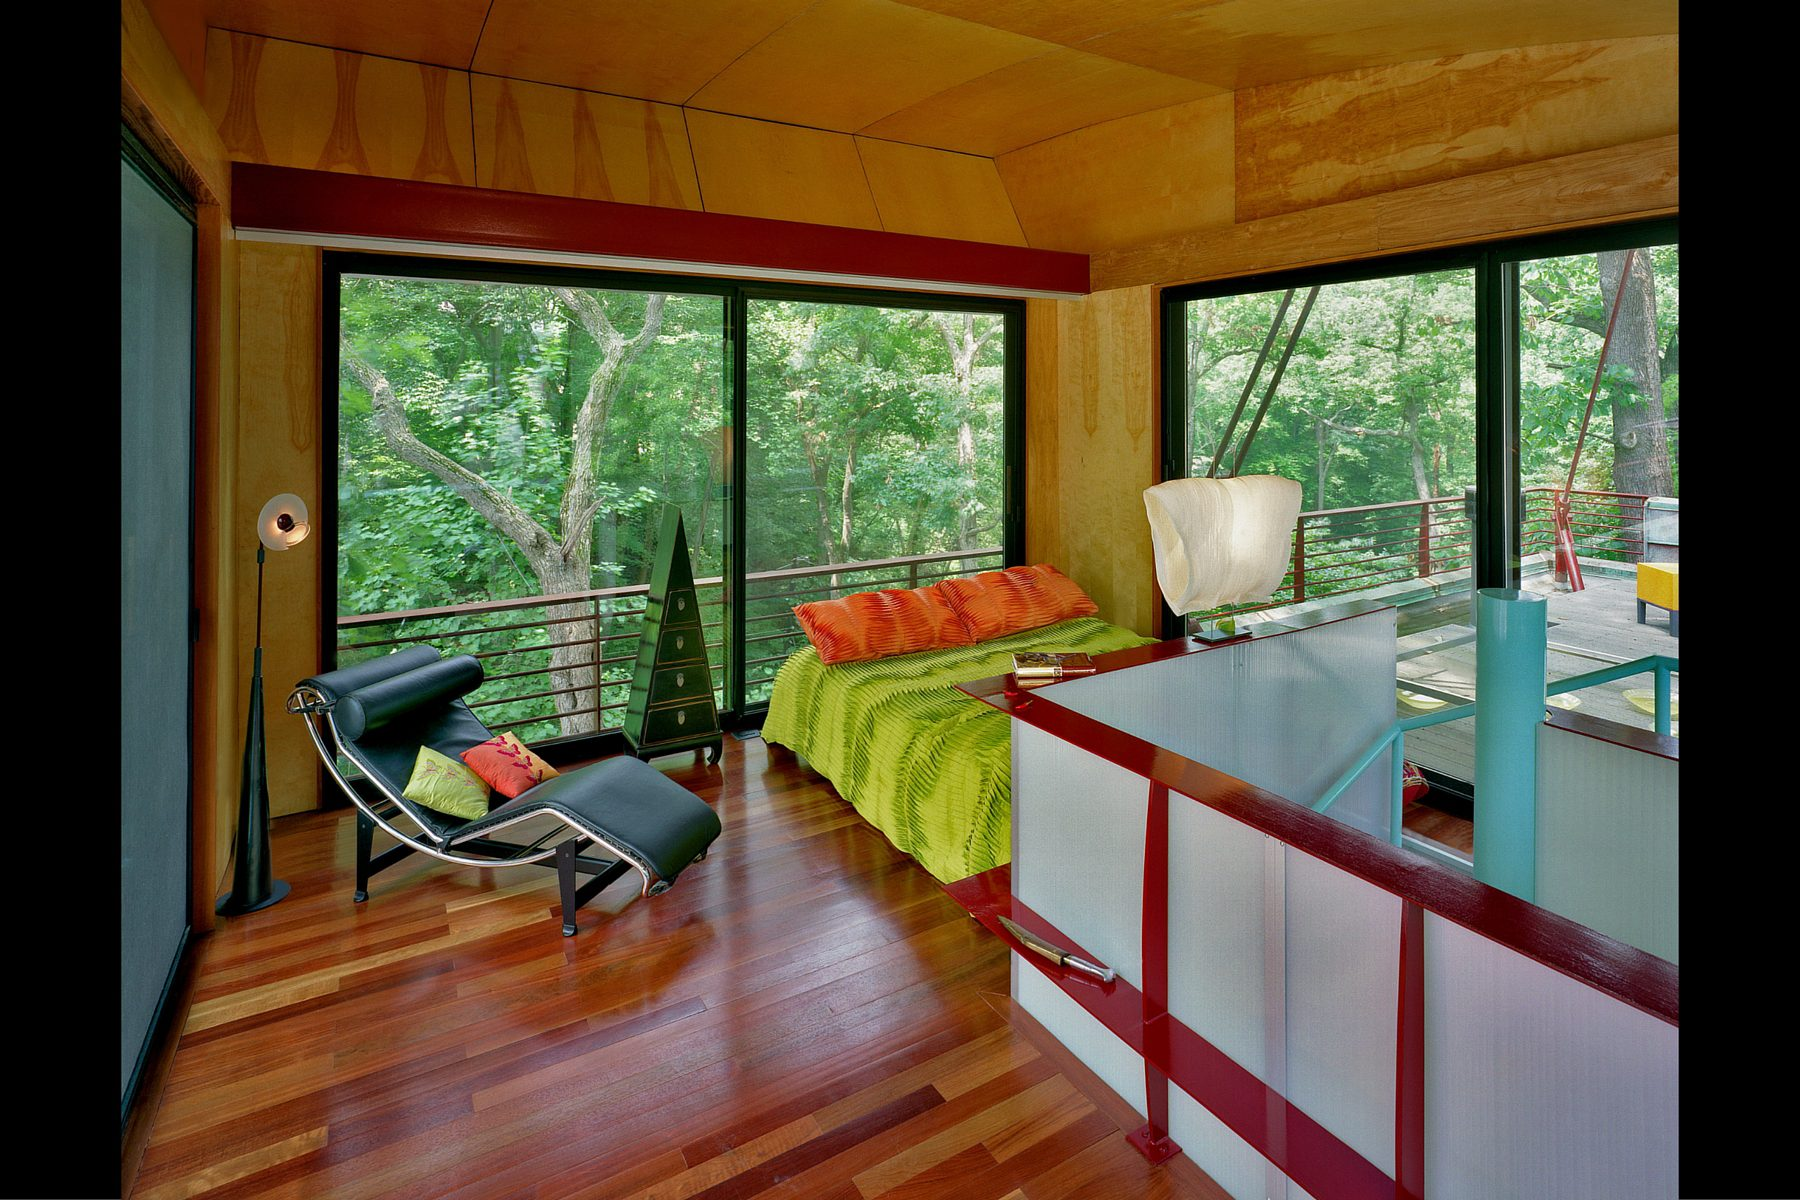 Additional photo for property listing at 2805 Chesterfield Place NW, Washington 2805 Chesterfield Place NW Washington, District Of Columbia 20008 United States